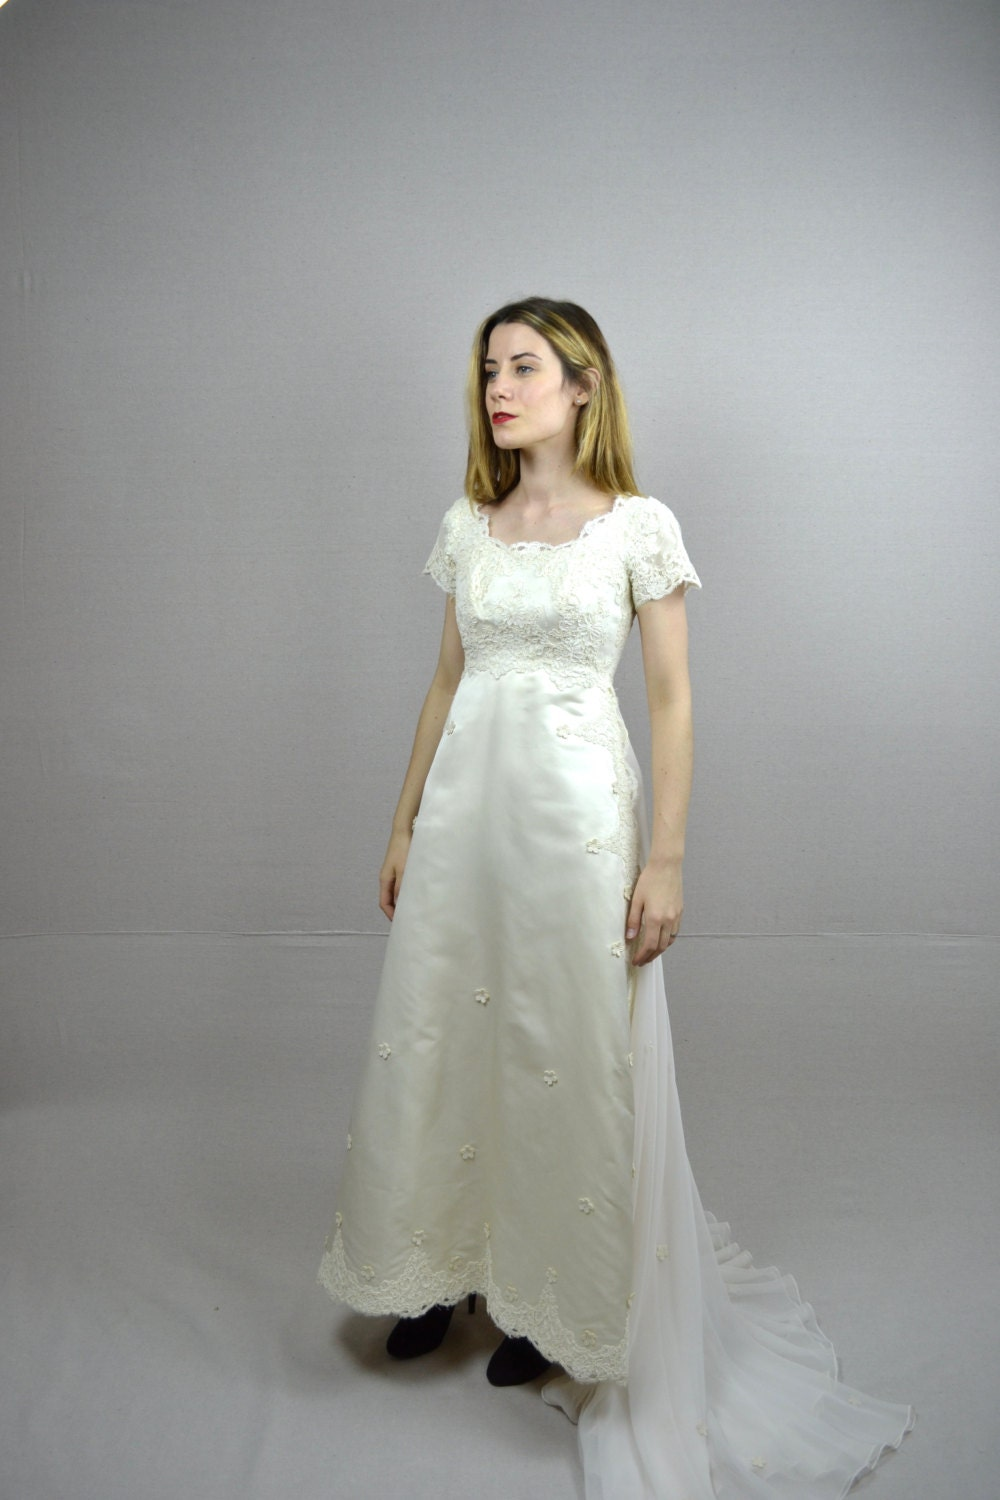 60s wedding dress 1960s wedding dress gisella for 1960 style wedding dresses